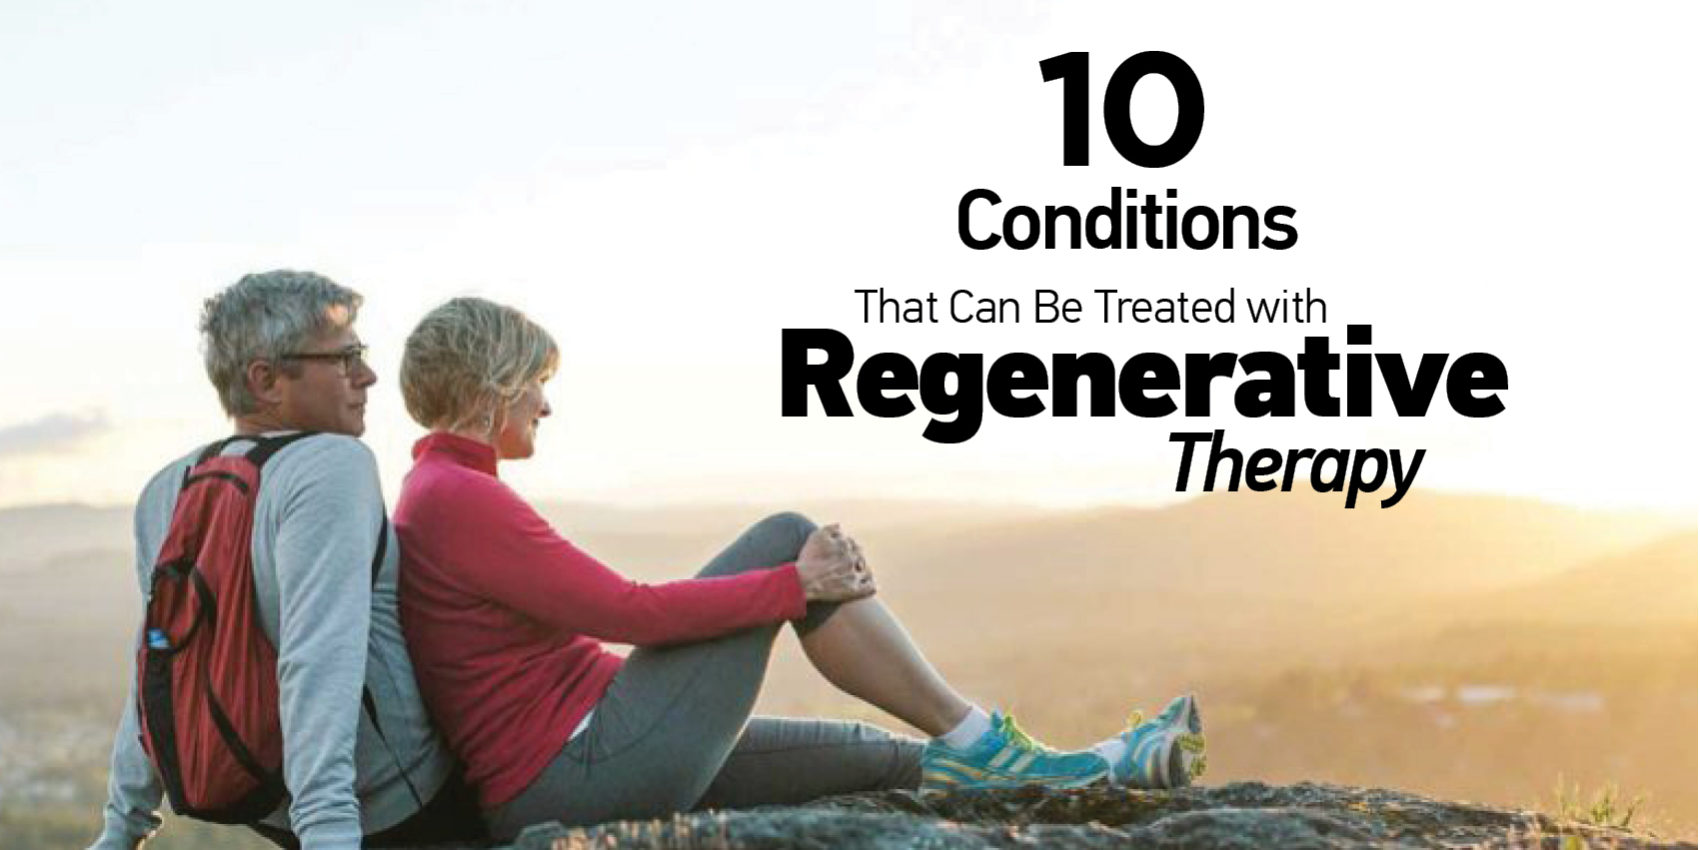 10 Conditions That Can Be Treated with Regenerative Therapy